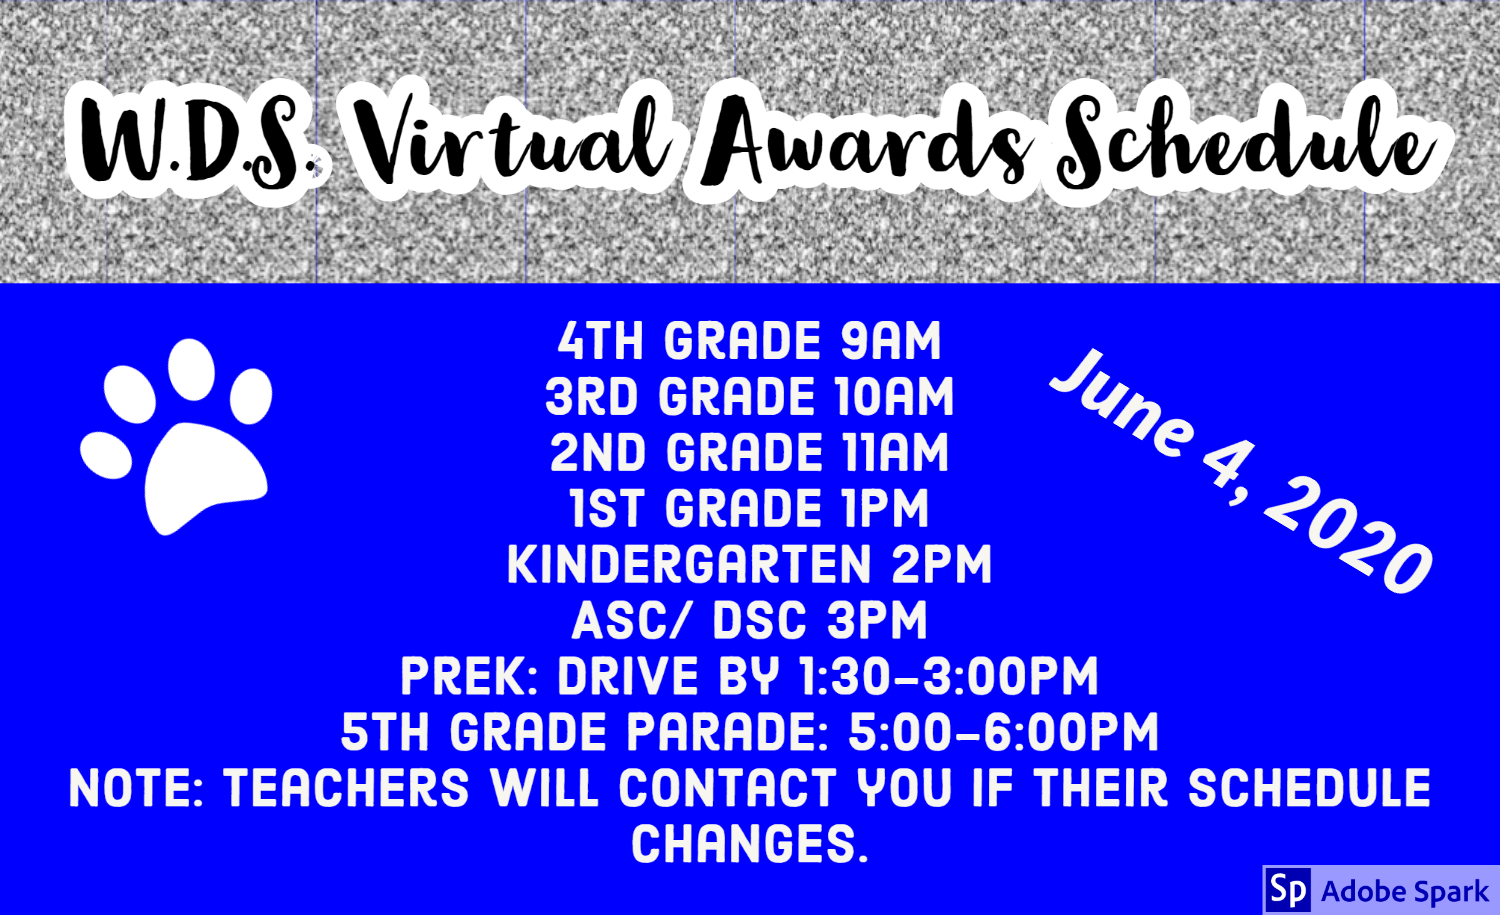 Image of W.D. Surratt Elementary virtual awards schedule